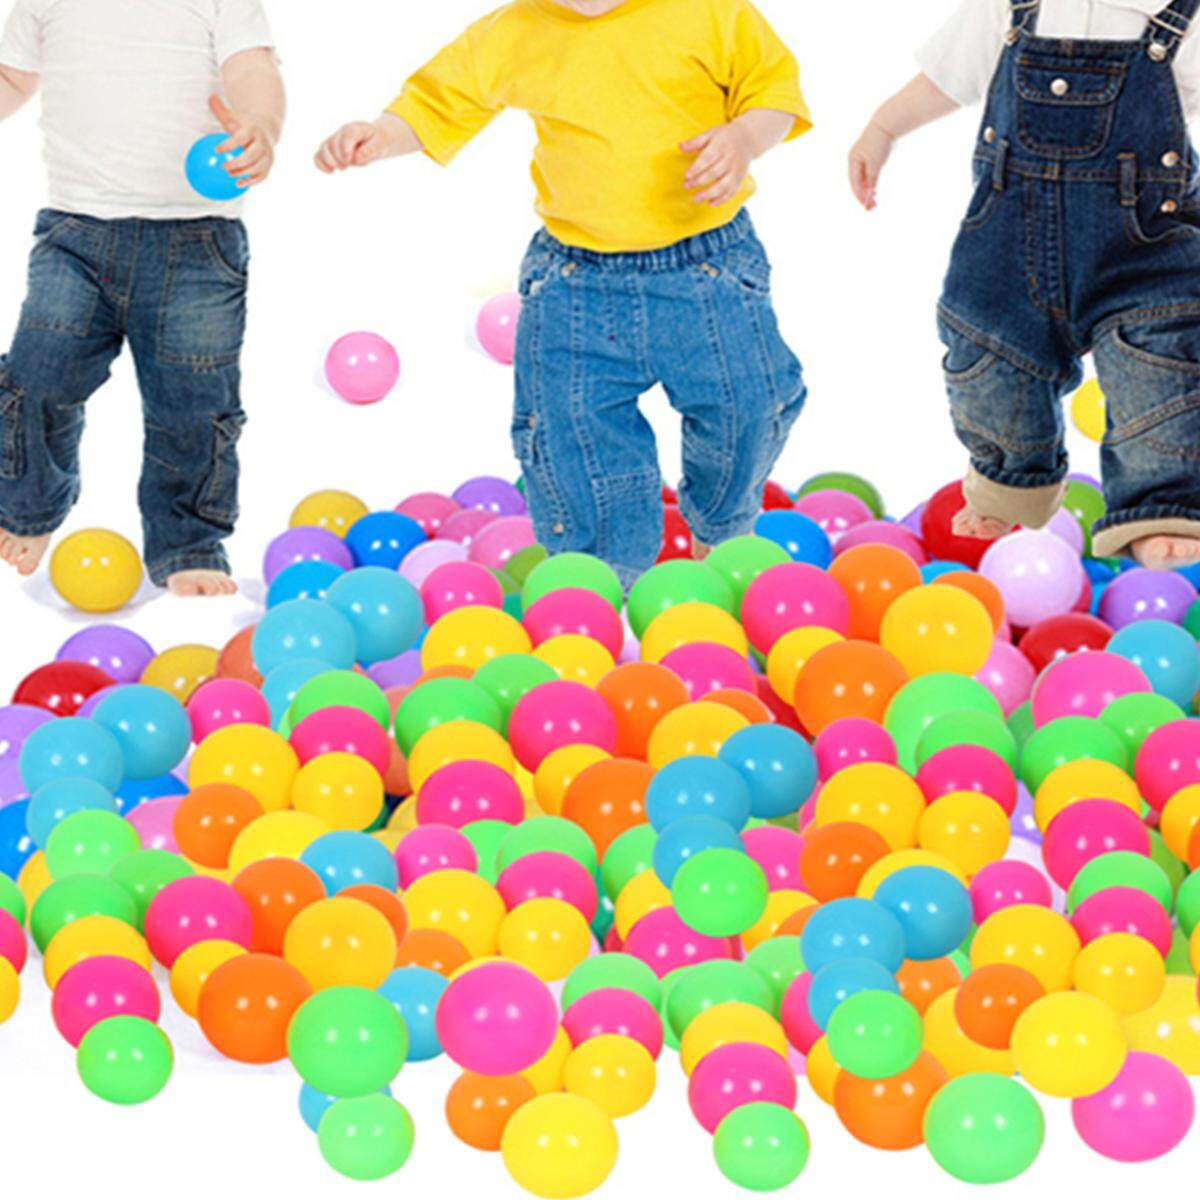 100pcs Colorful Ocean Balls Soft Plastic Baby Children Kids Swim Toy Au  7cm By Freebang.